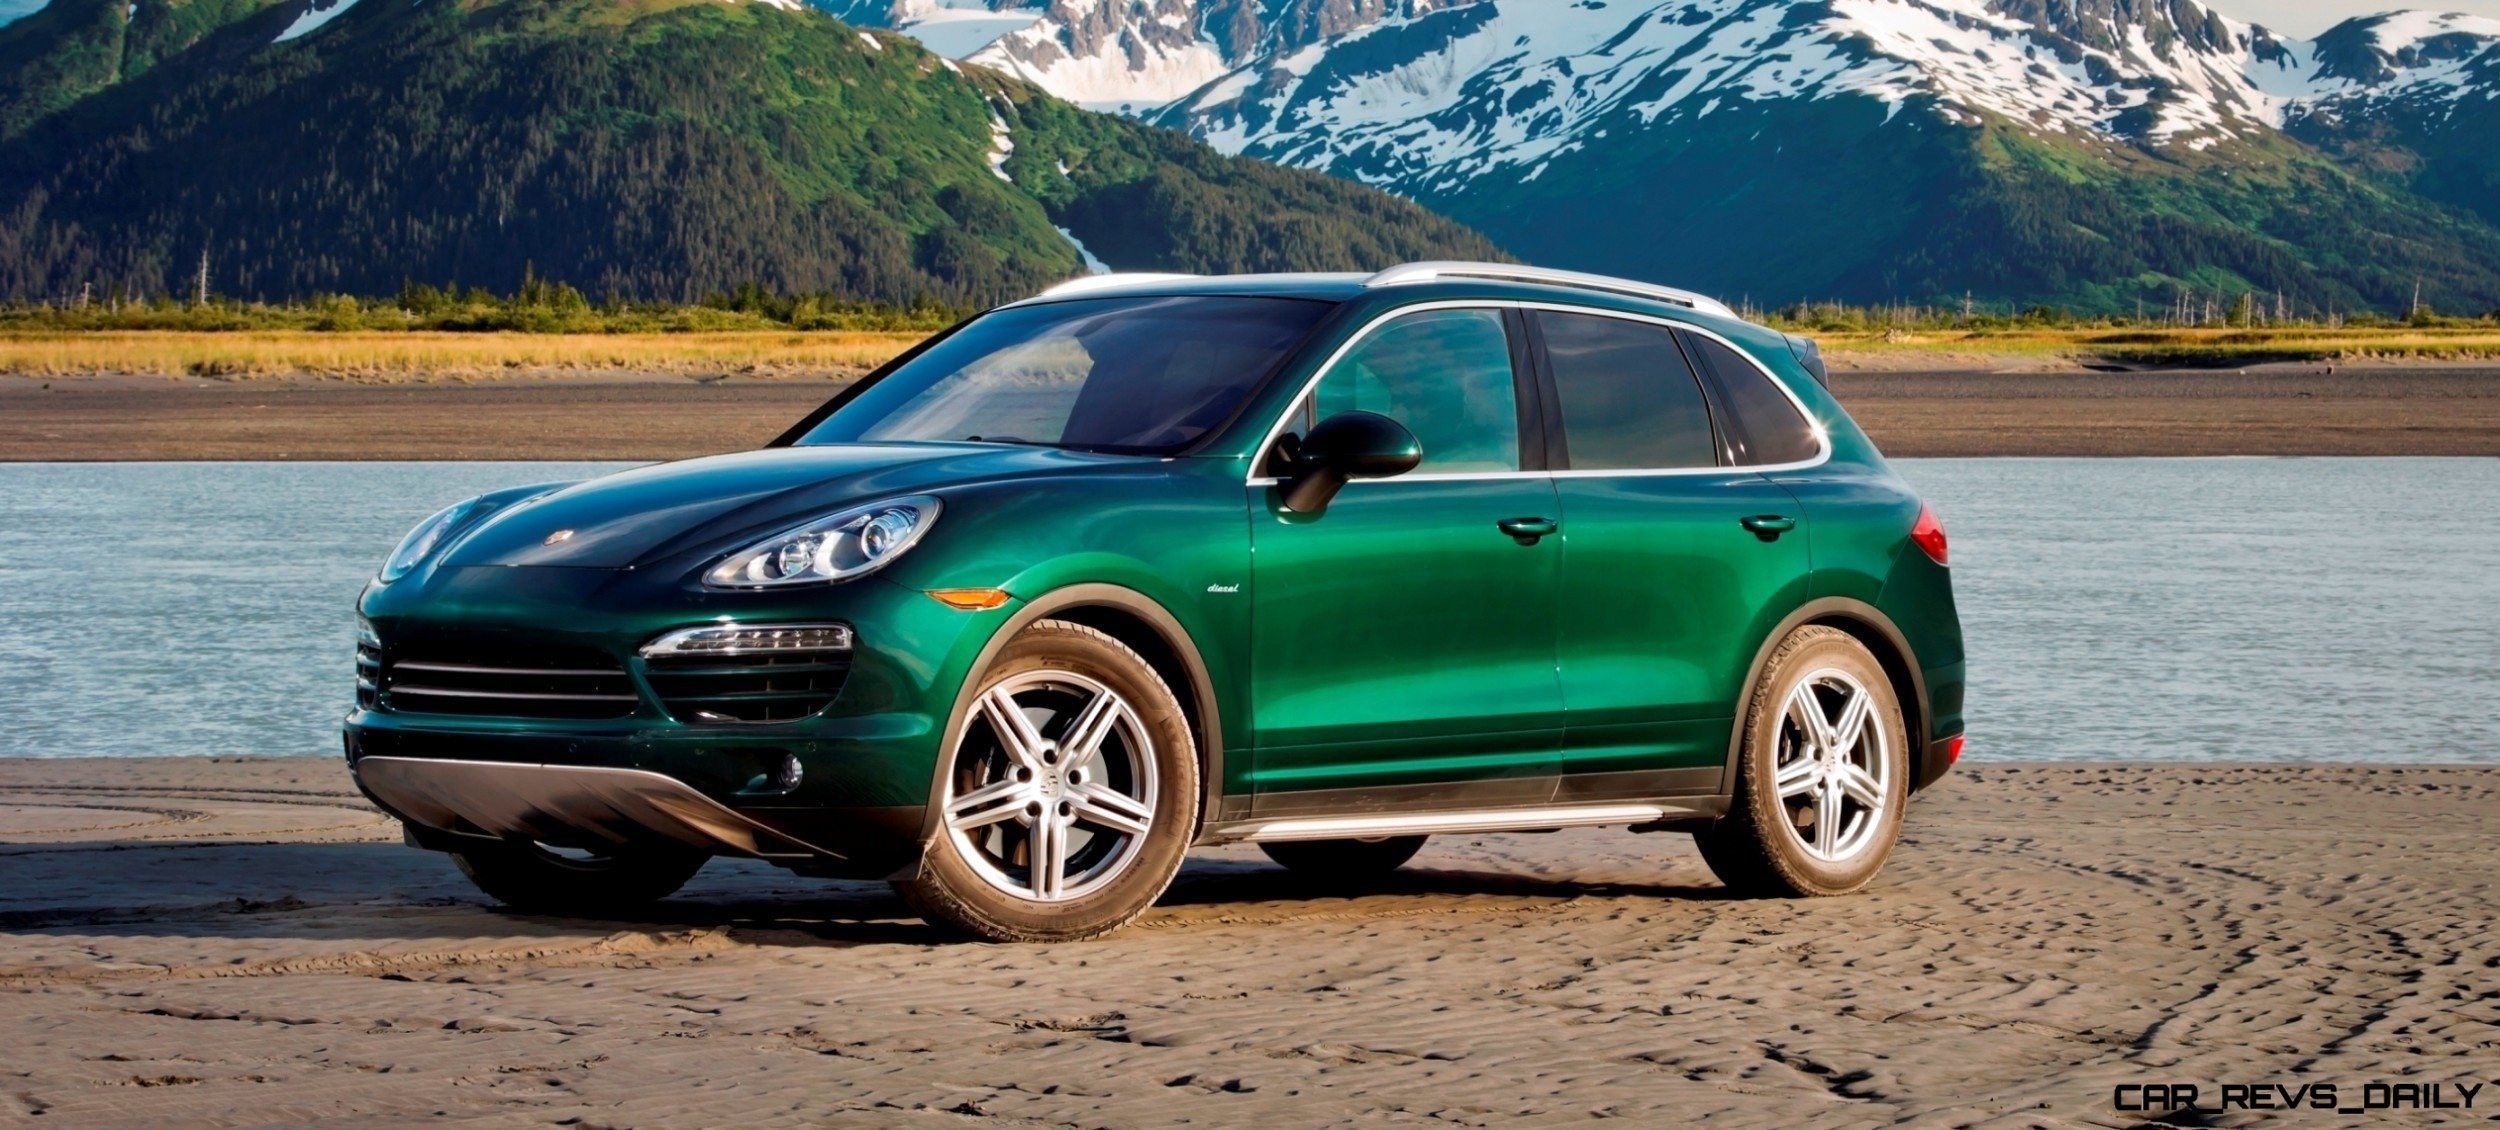 new for 2014 porsche cayenne turbo s tops 8 strong. Black Bedroom Furniture Sets. Home Design Ideas